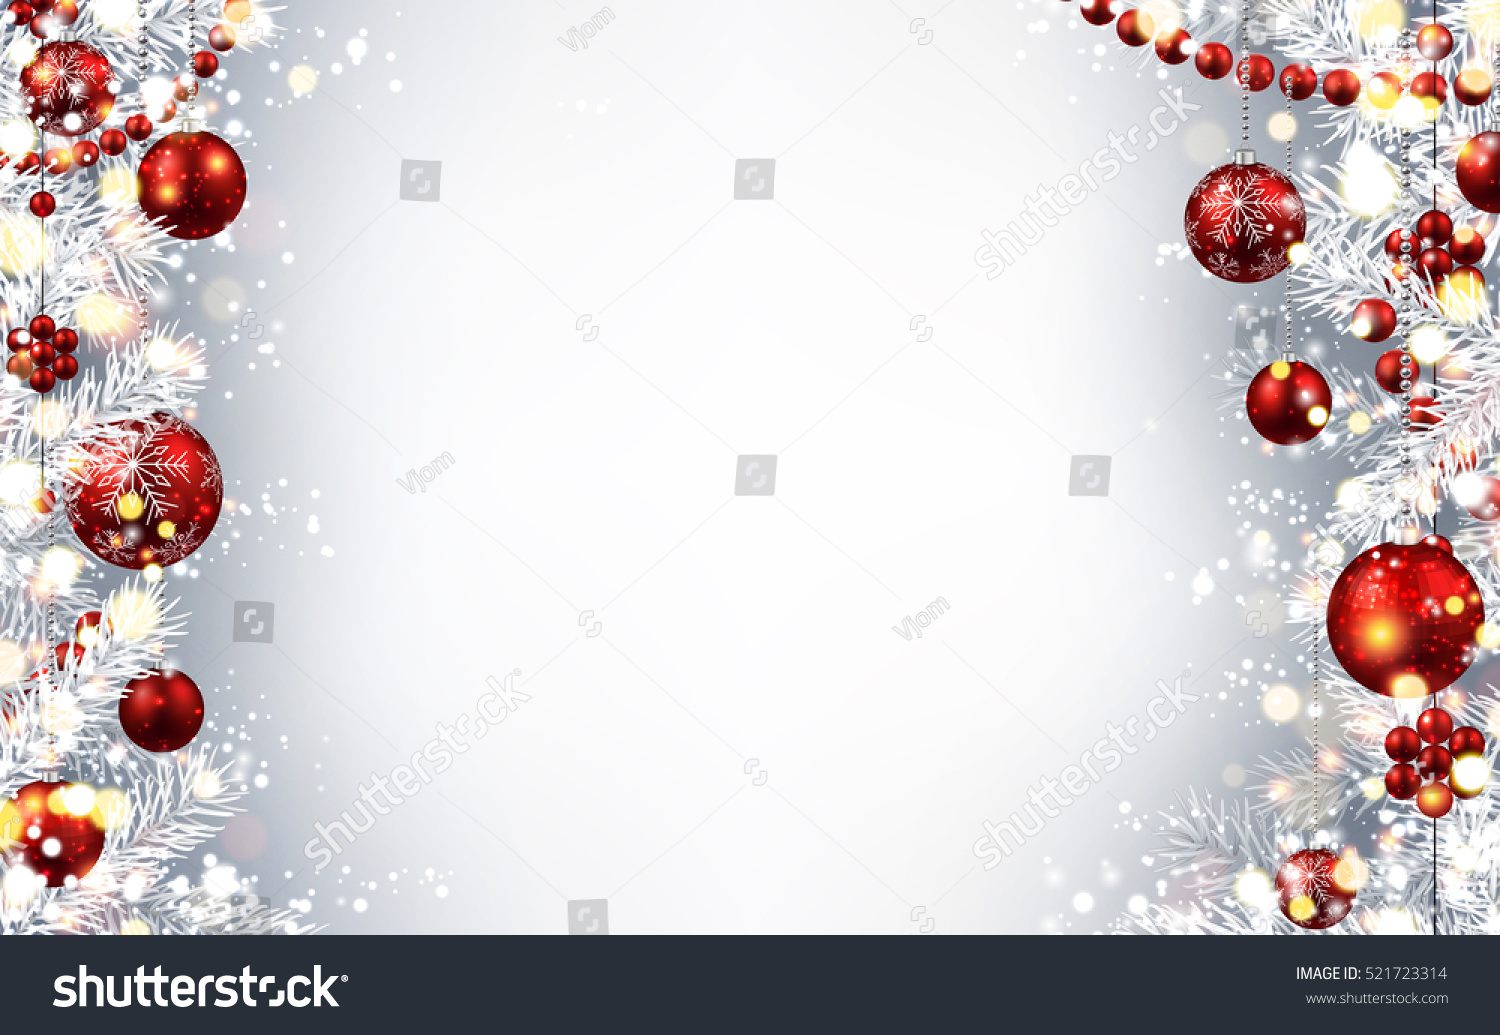 new year gray background with red christmas balls vector illustration